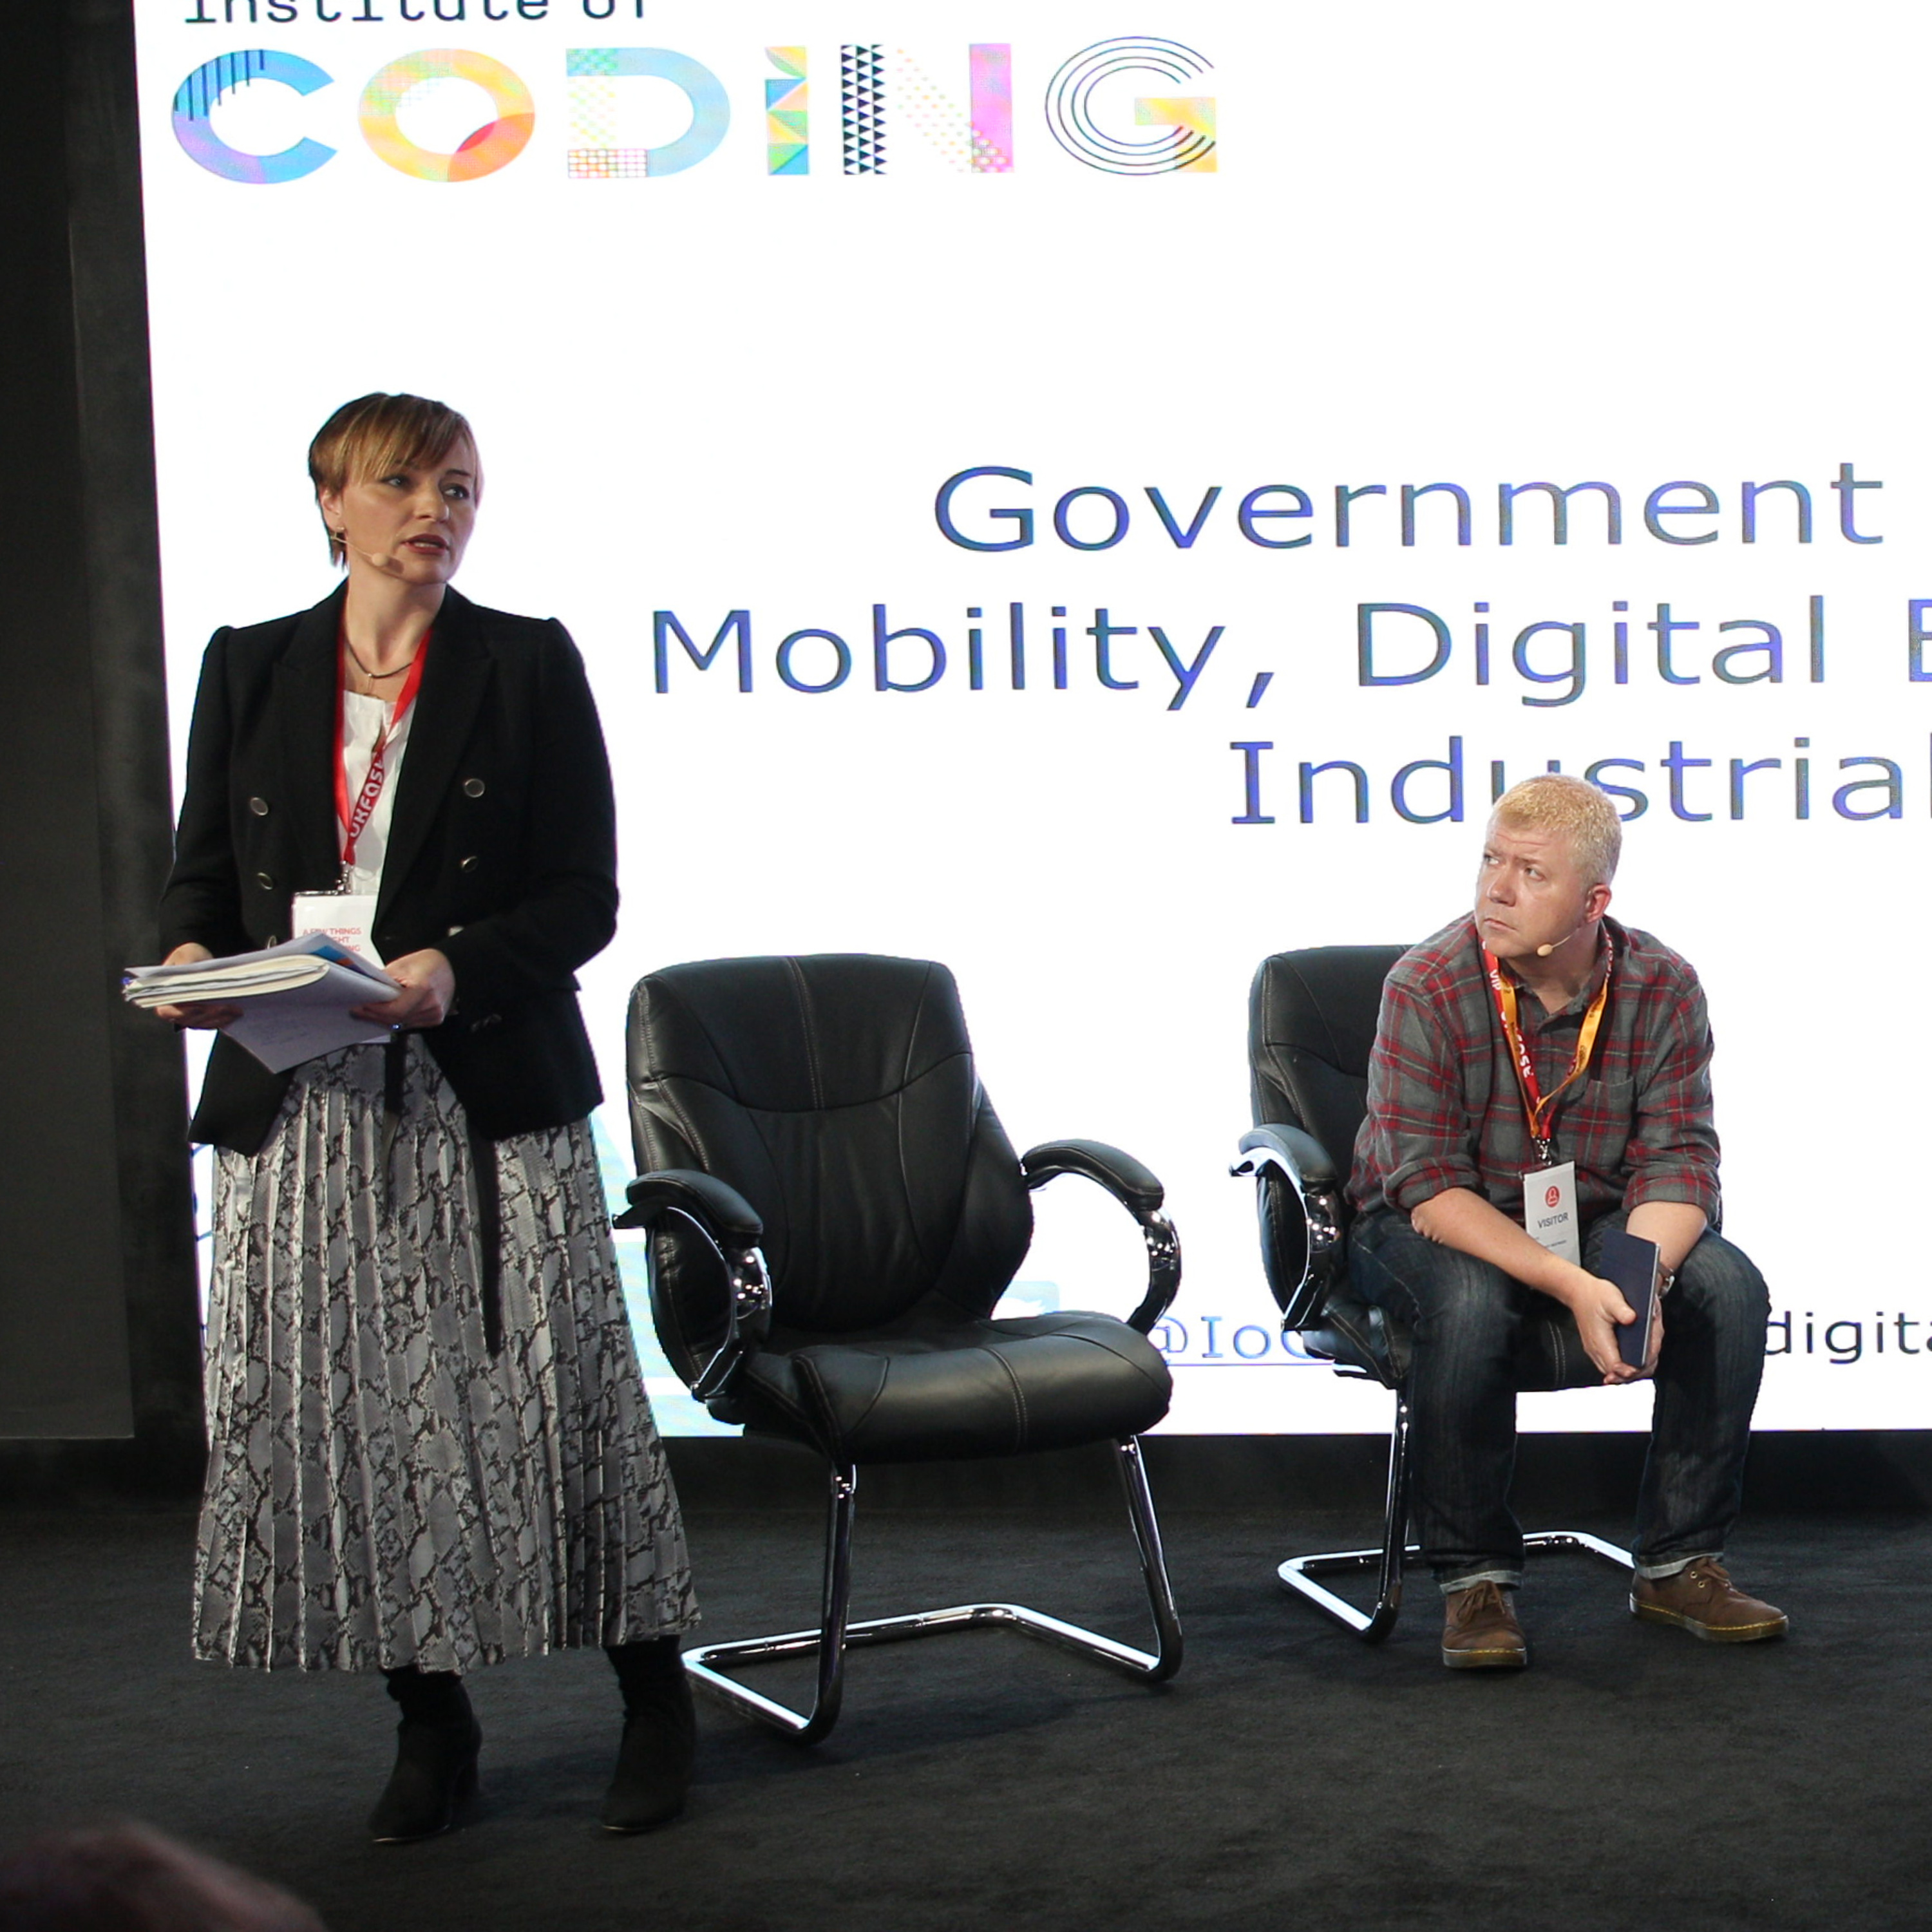 Government Policy: Social Mobility, Digital Employment, and Industrial Strategy